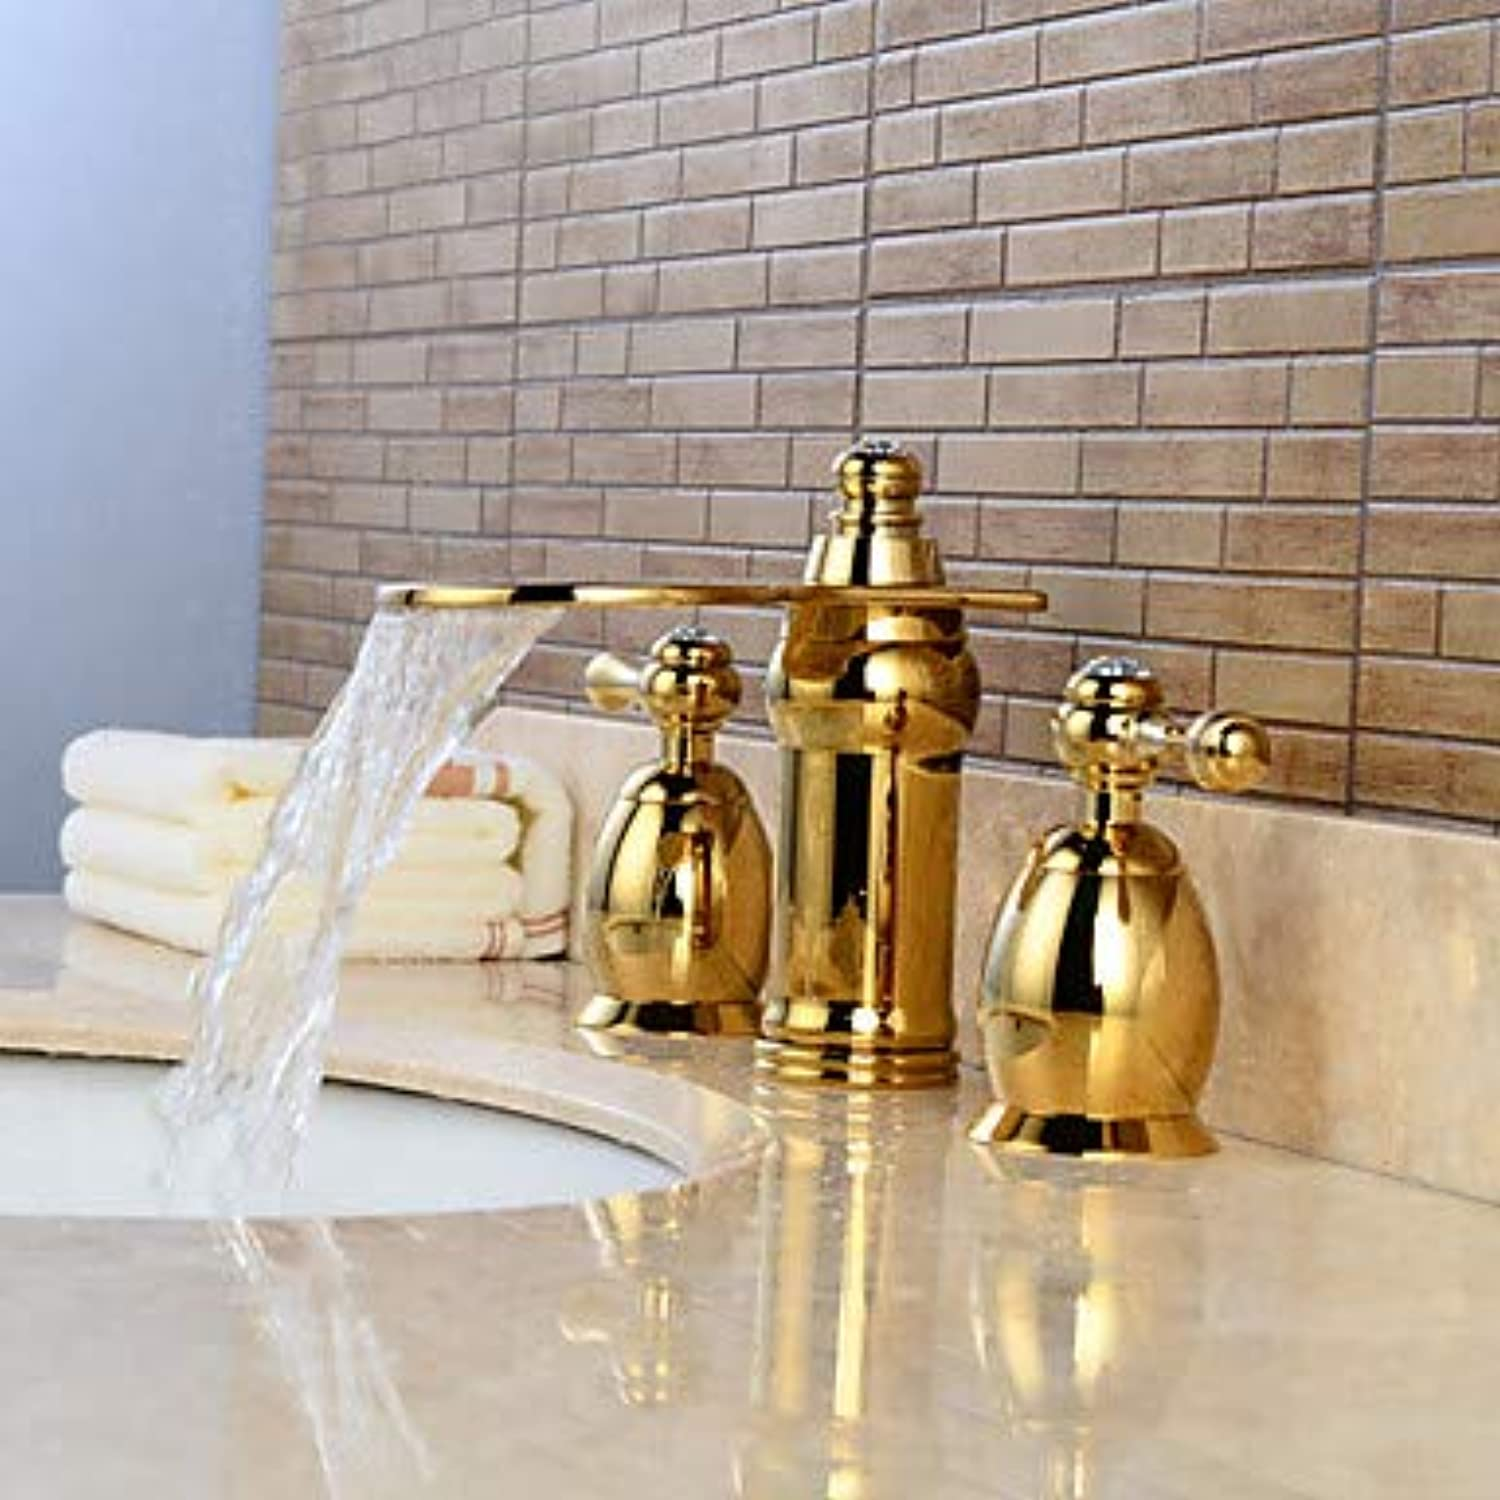 Mangeoo Bathroom Sink Faucet - Waterfall Widespread Ti-Pvd Widespread Two Handles Three Holesbath Taps